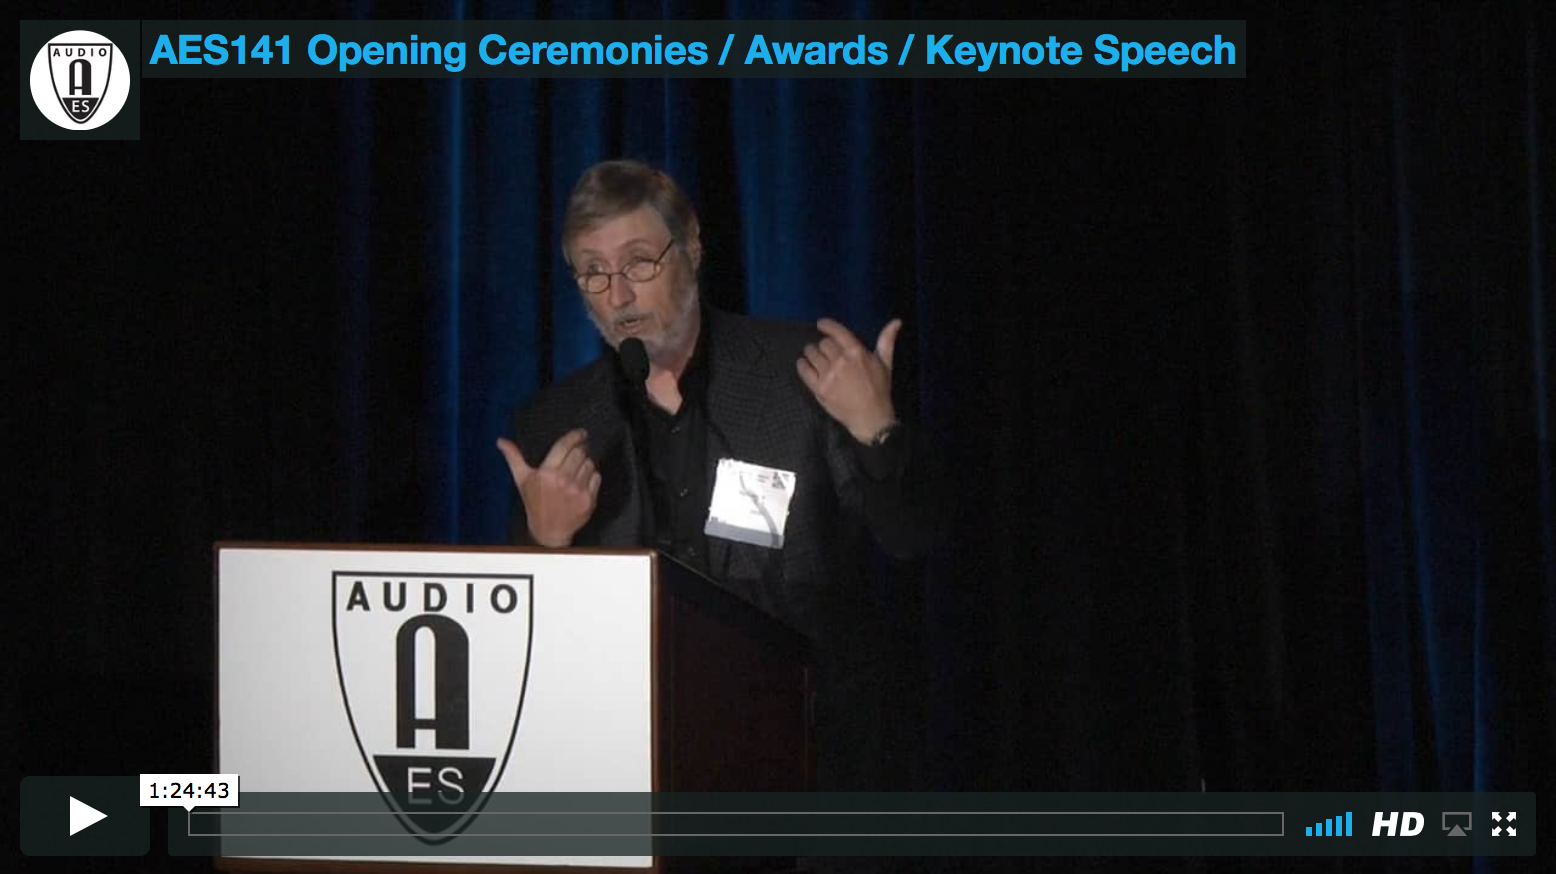 141st Convention Opening Ceremonies / Awards / Keynote Speech